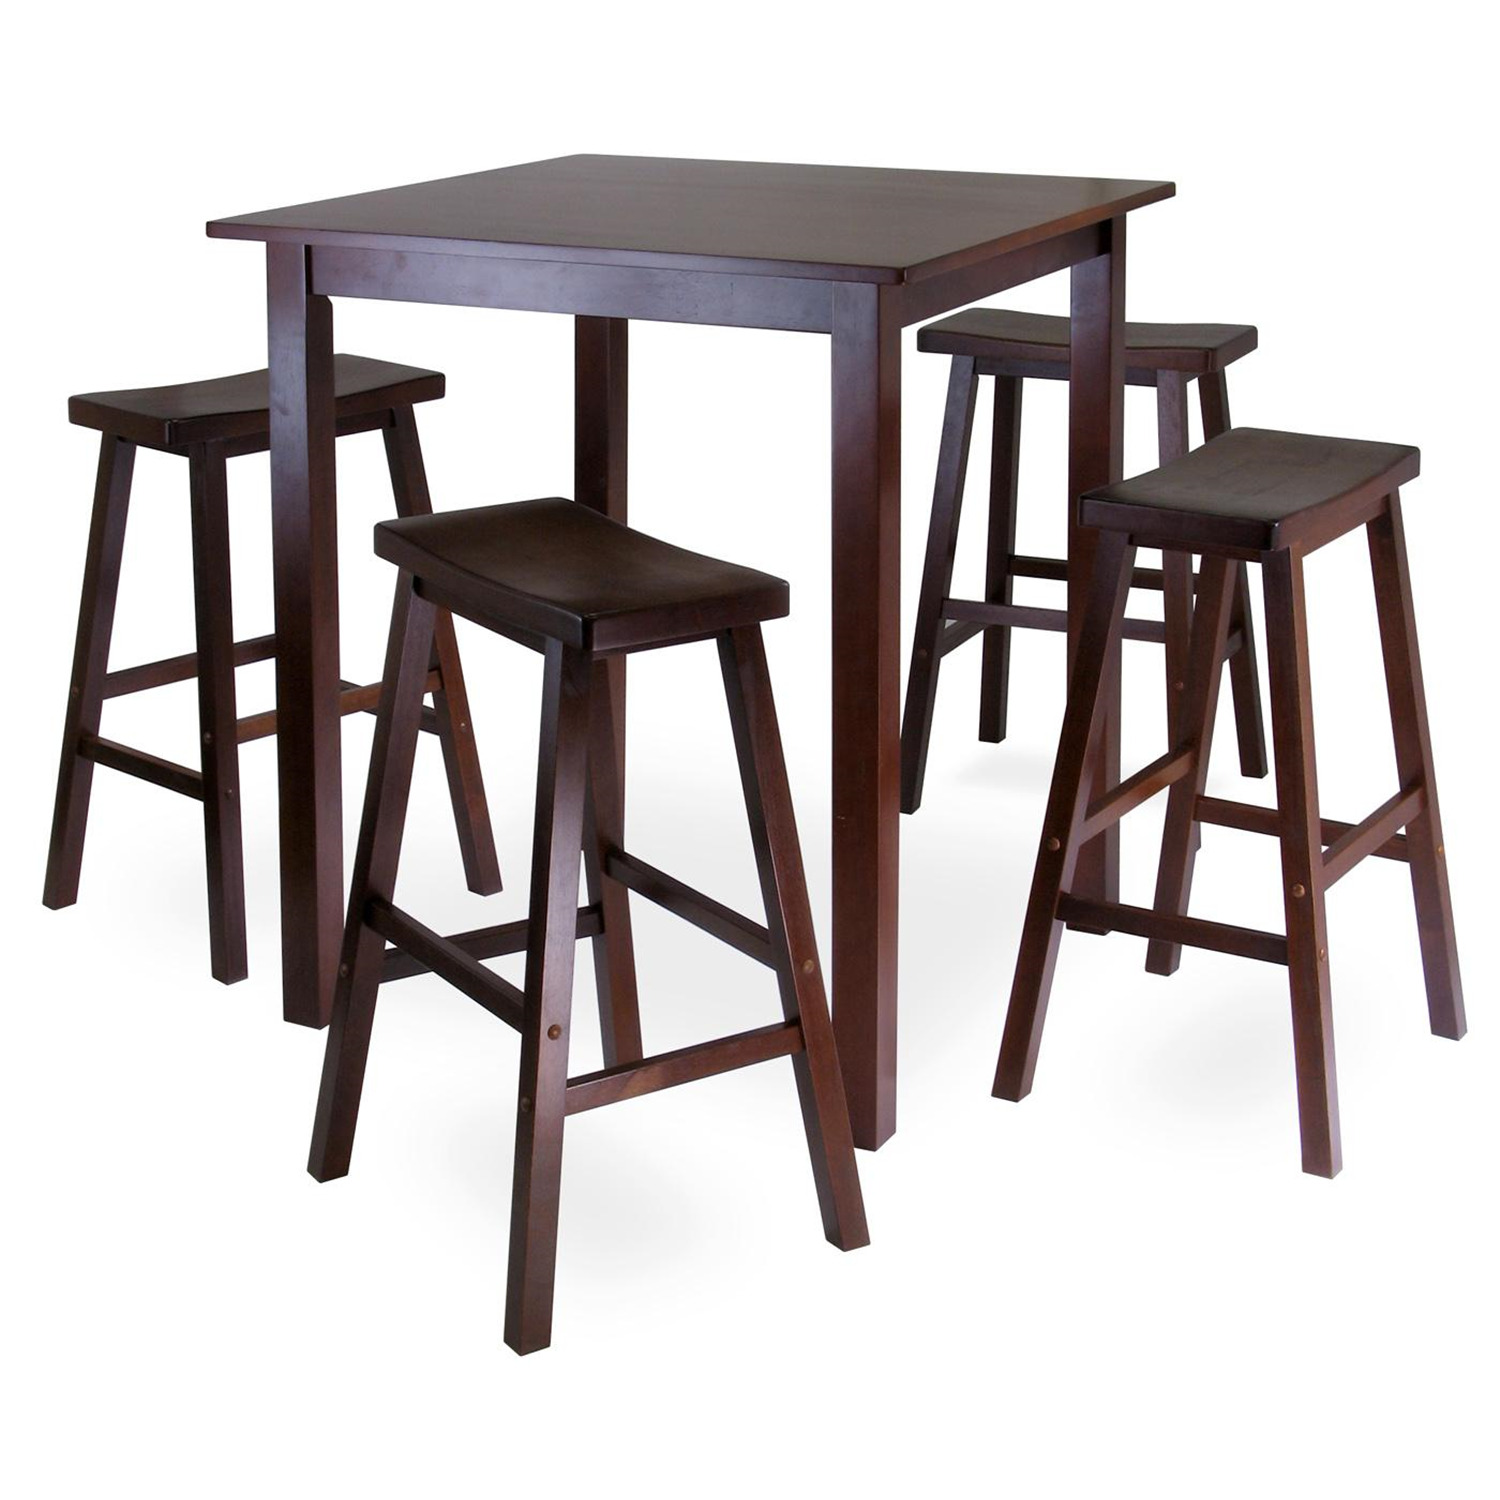 Parkland 5pc Square High Pub Table Set With 4 Saddle Seat Stools Ojcommerce